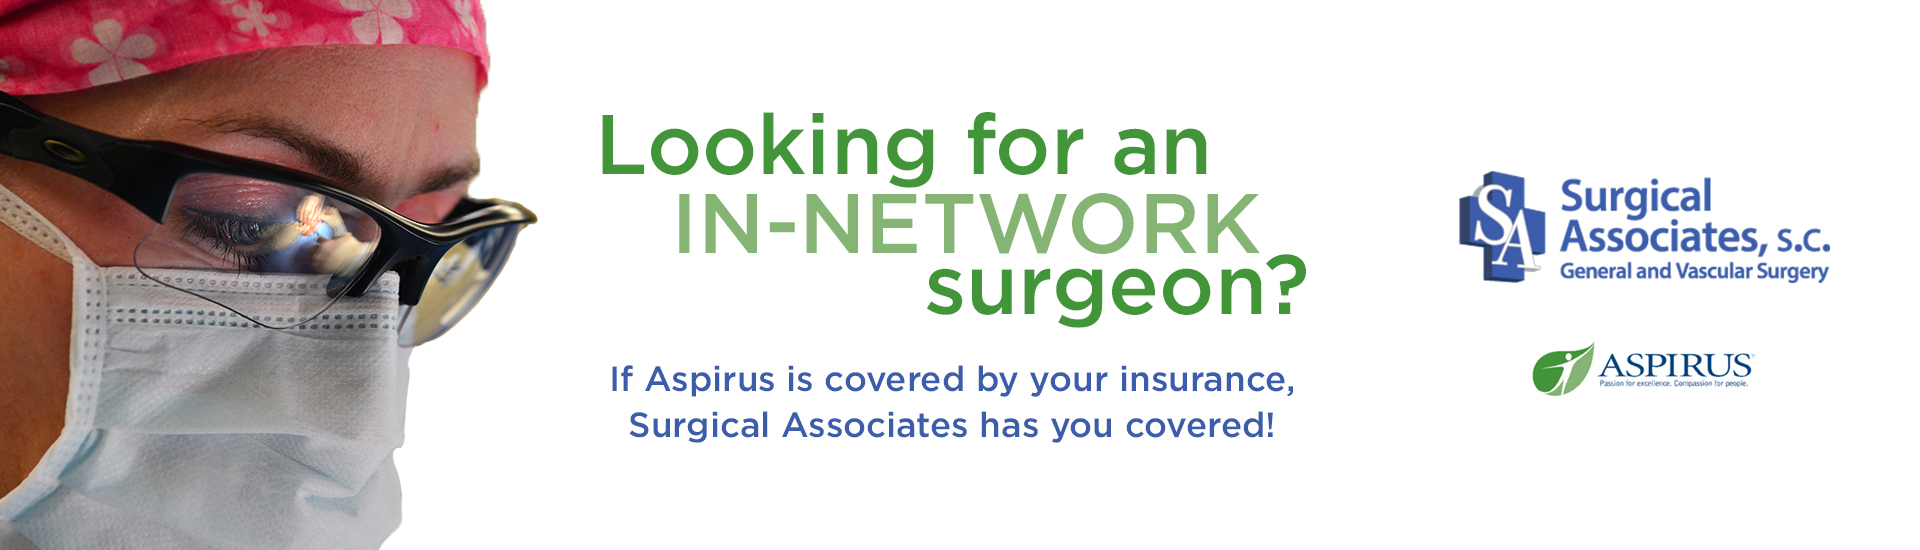 Looking for an IN-Network Surgeon?